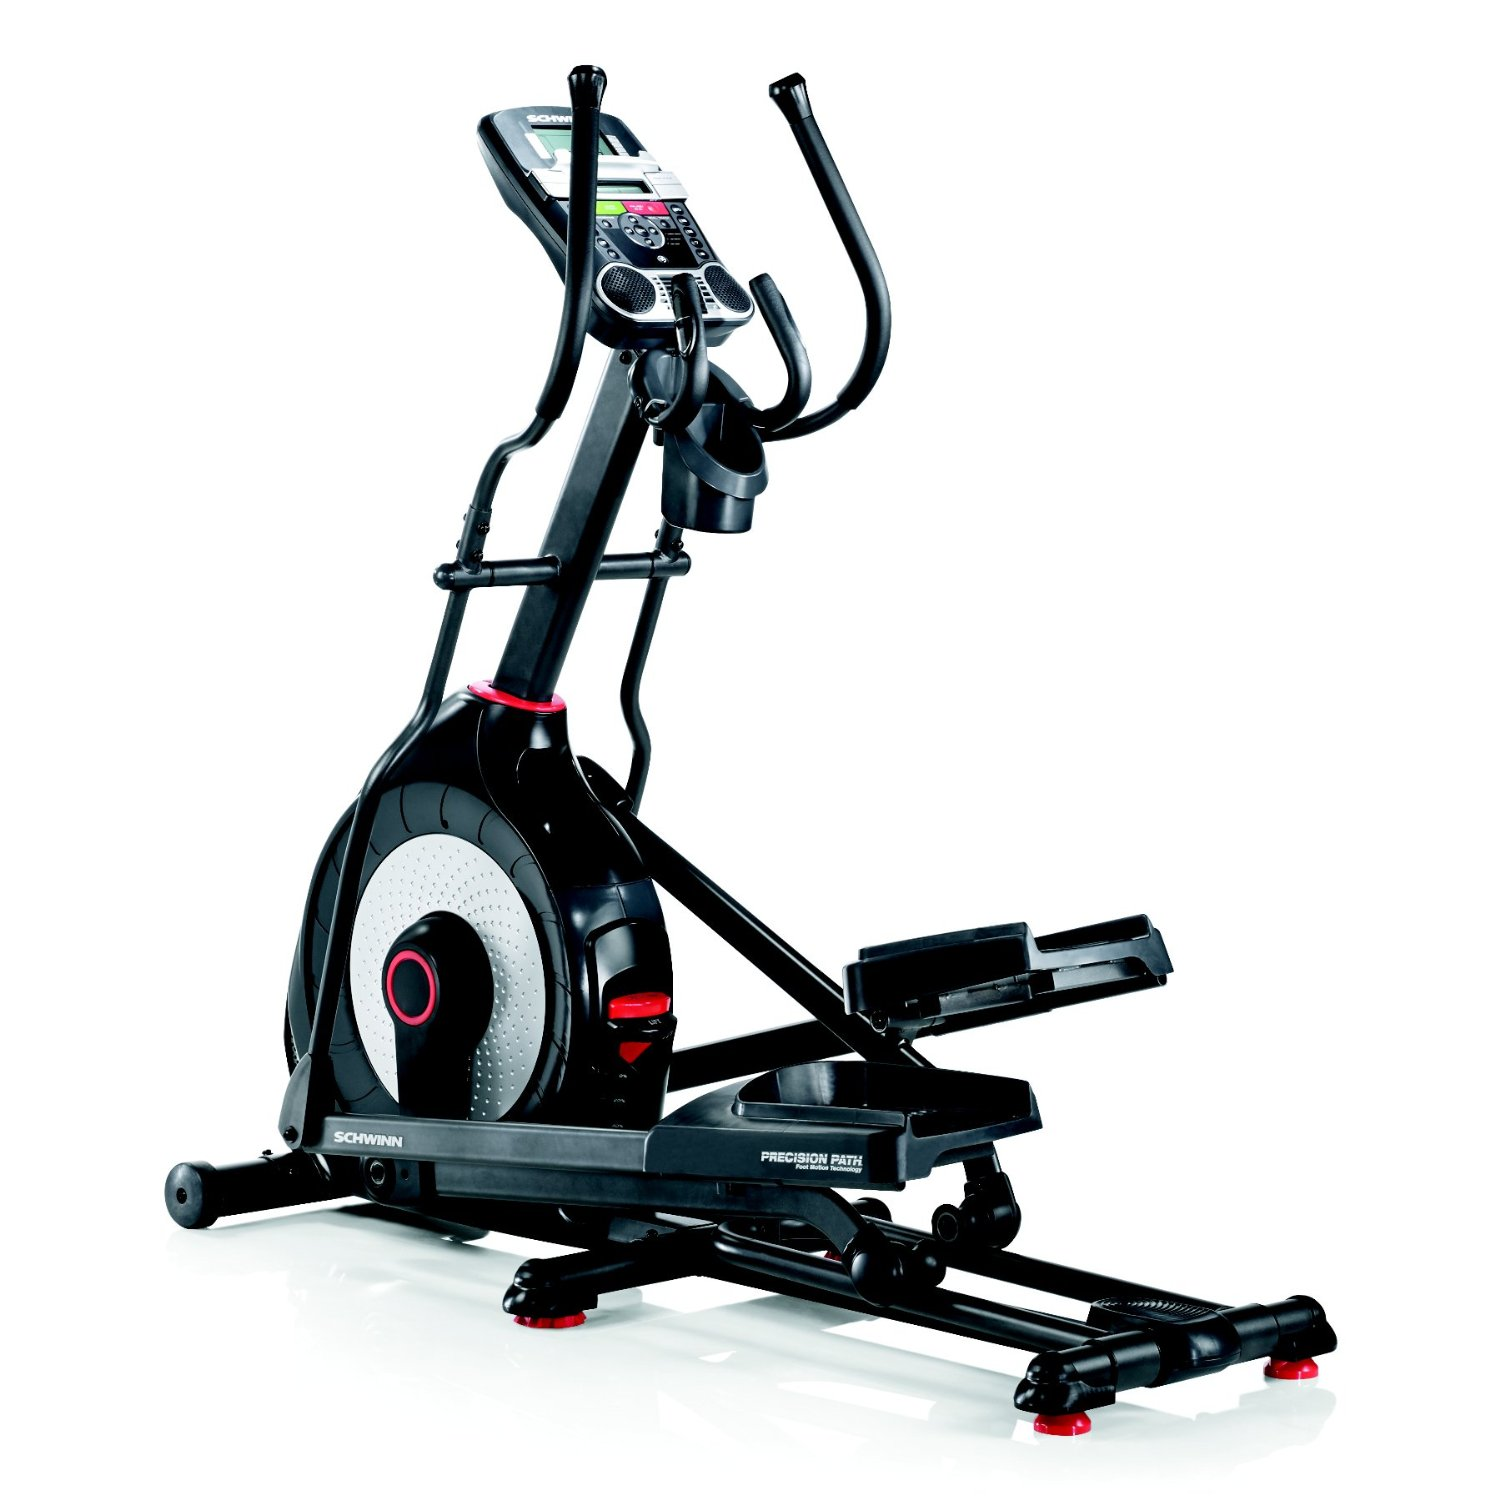 Best Budget Elliptical Trainer 2017